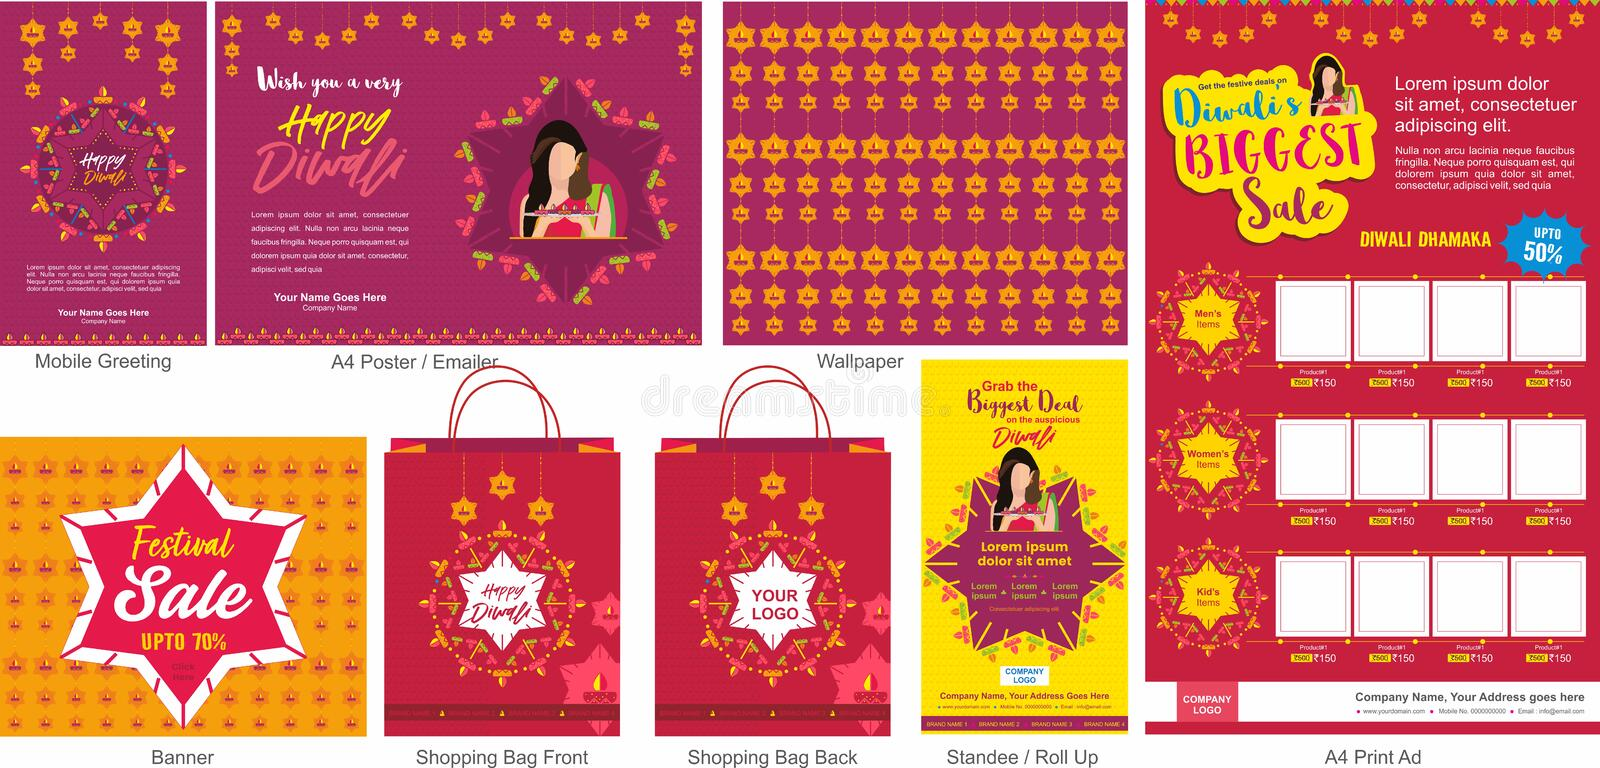 Diwali Festival Offer Big Sale Template with mobile greeting, mailer or flyer, wallpaper, print ad, Banner, Shopping bag design a. Nd roll ups. An Indian Hindu stock illustration